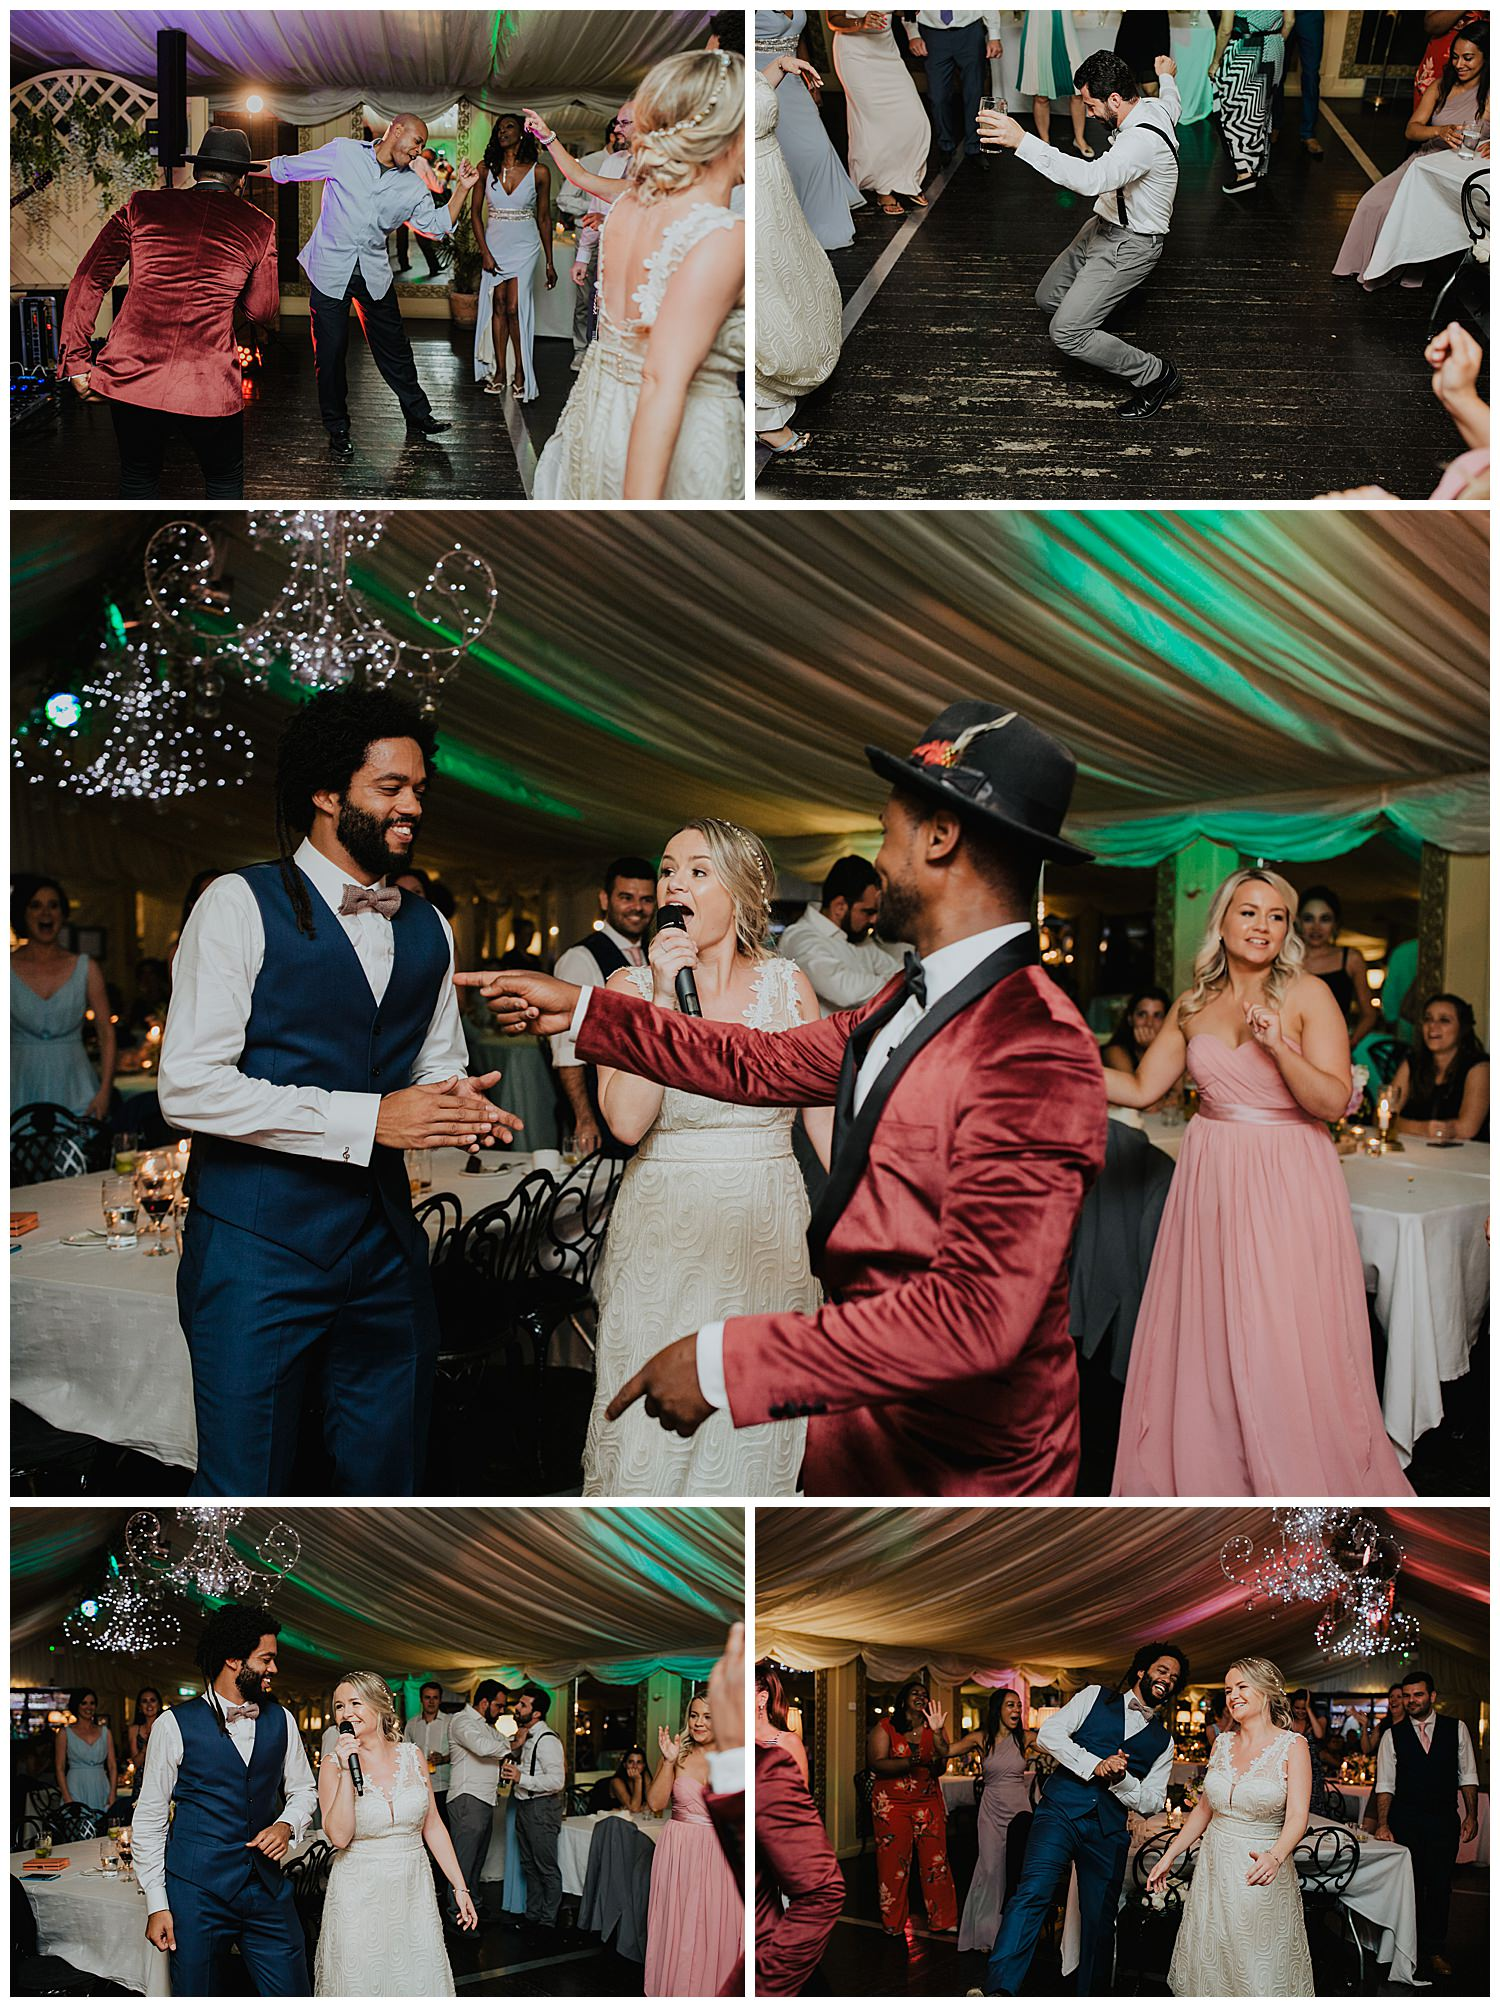 j&r_ballybeg_house_wedding_photographer_livia_figueiredo_777.jpg